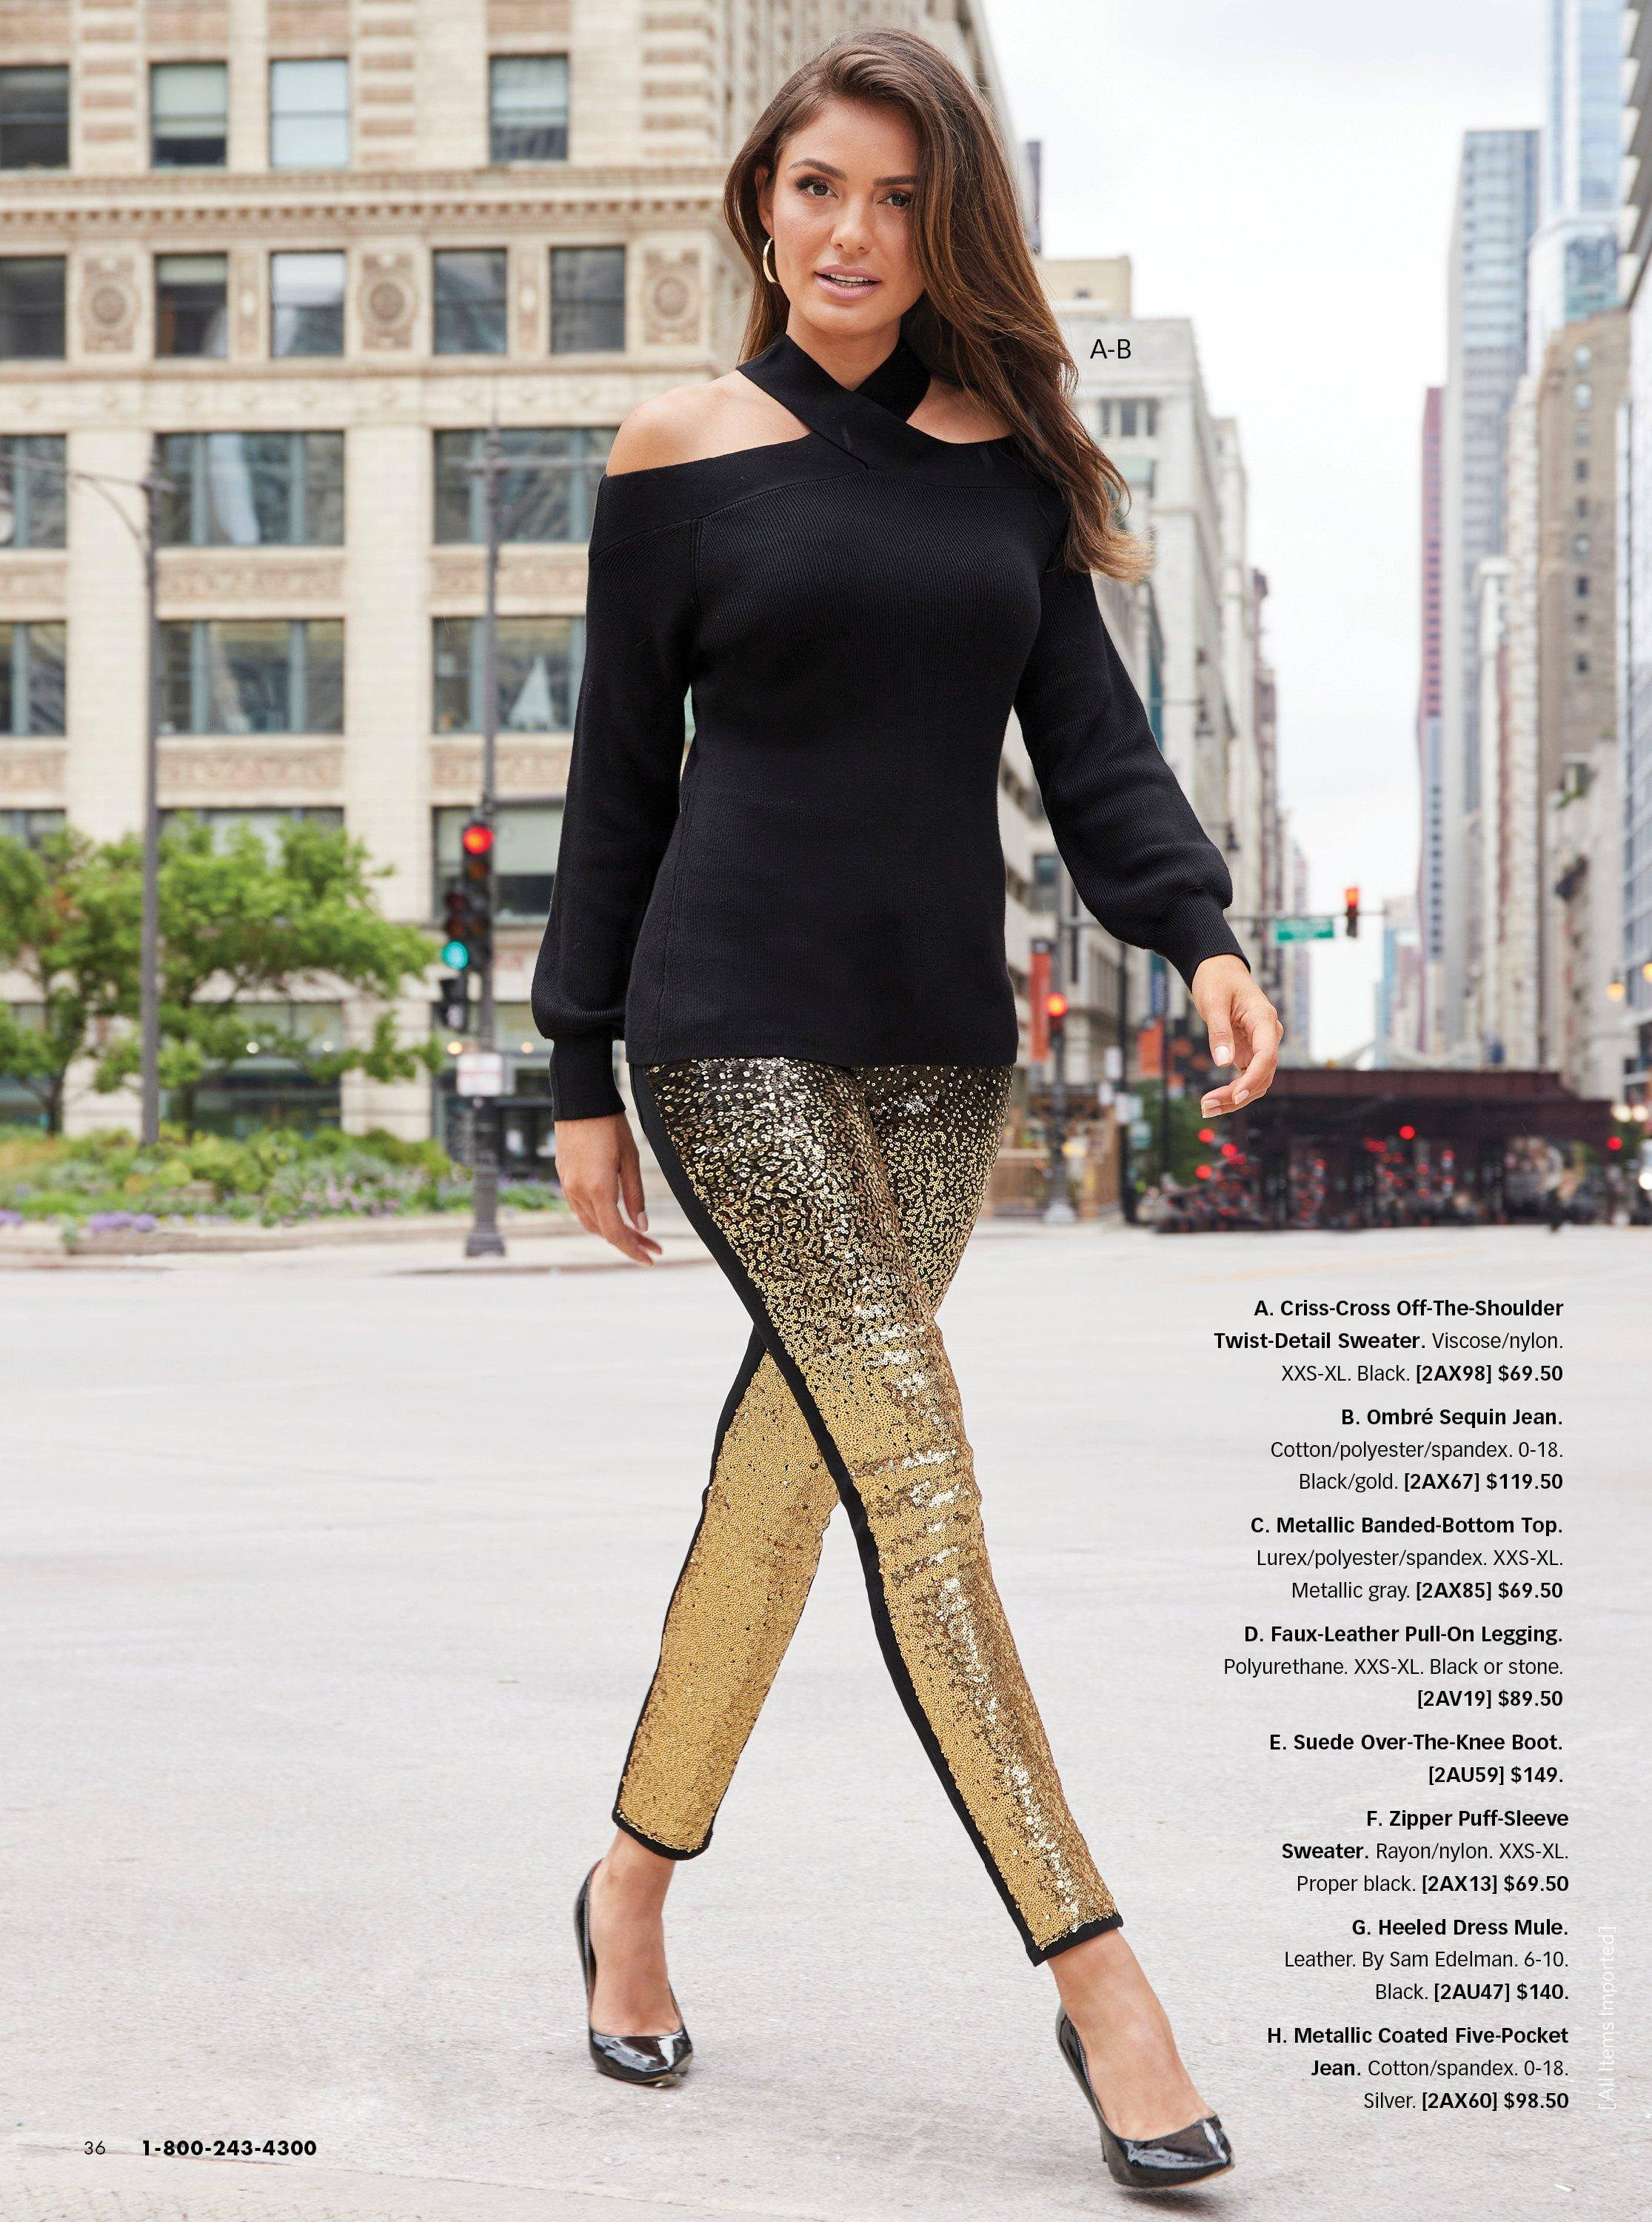 model wearing a black crisscross off-the-shoulder black sweater, black and gold ombre sequin jeans, and black pumps.